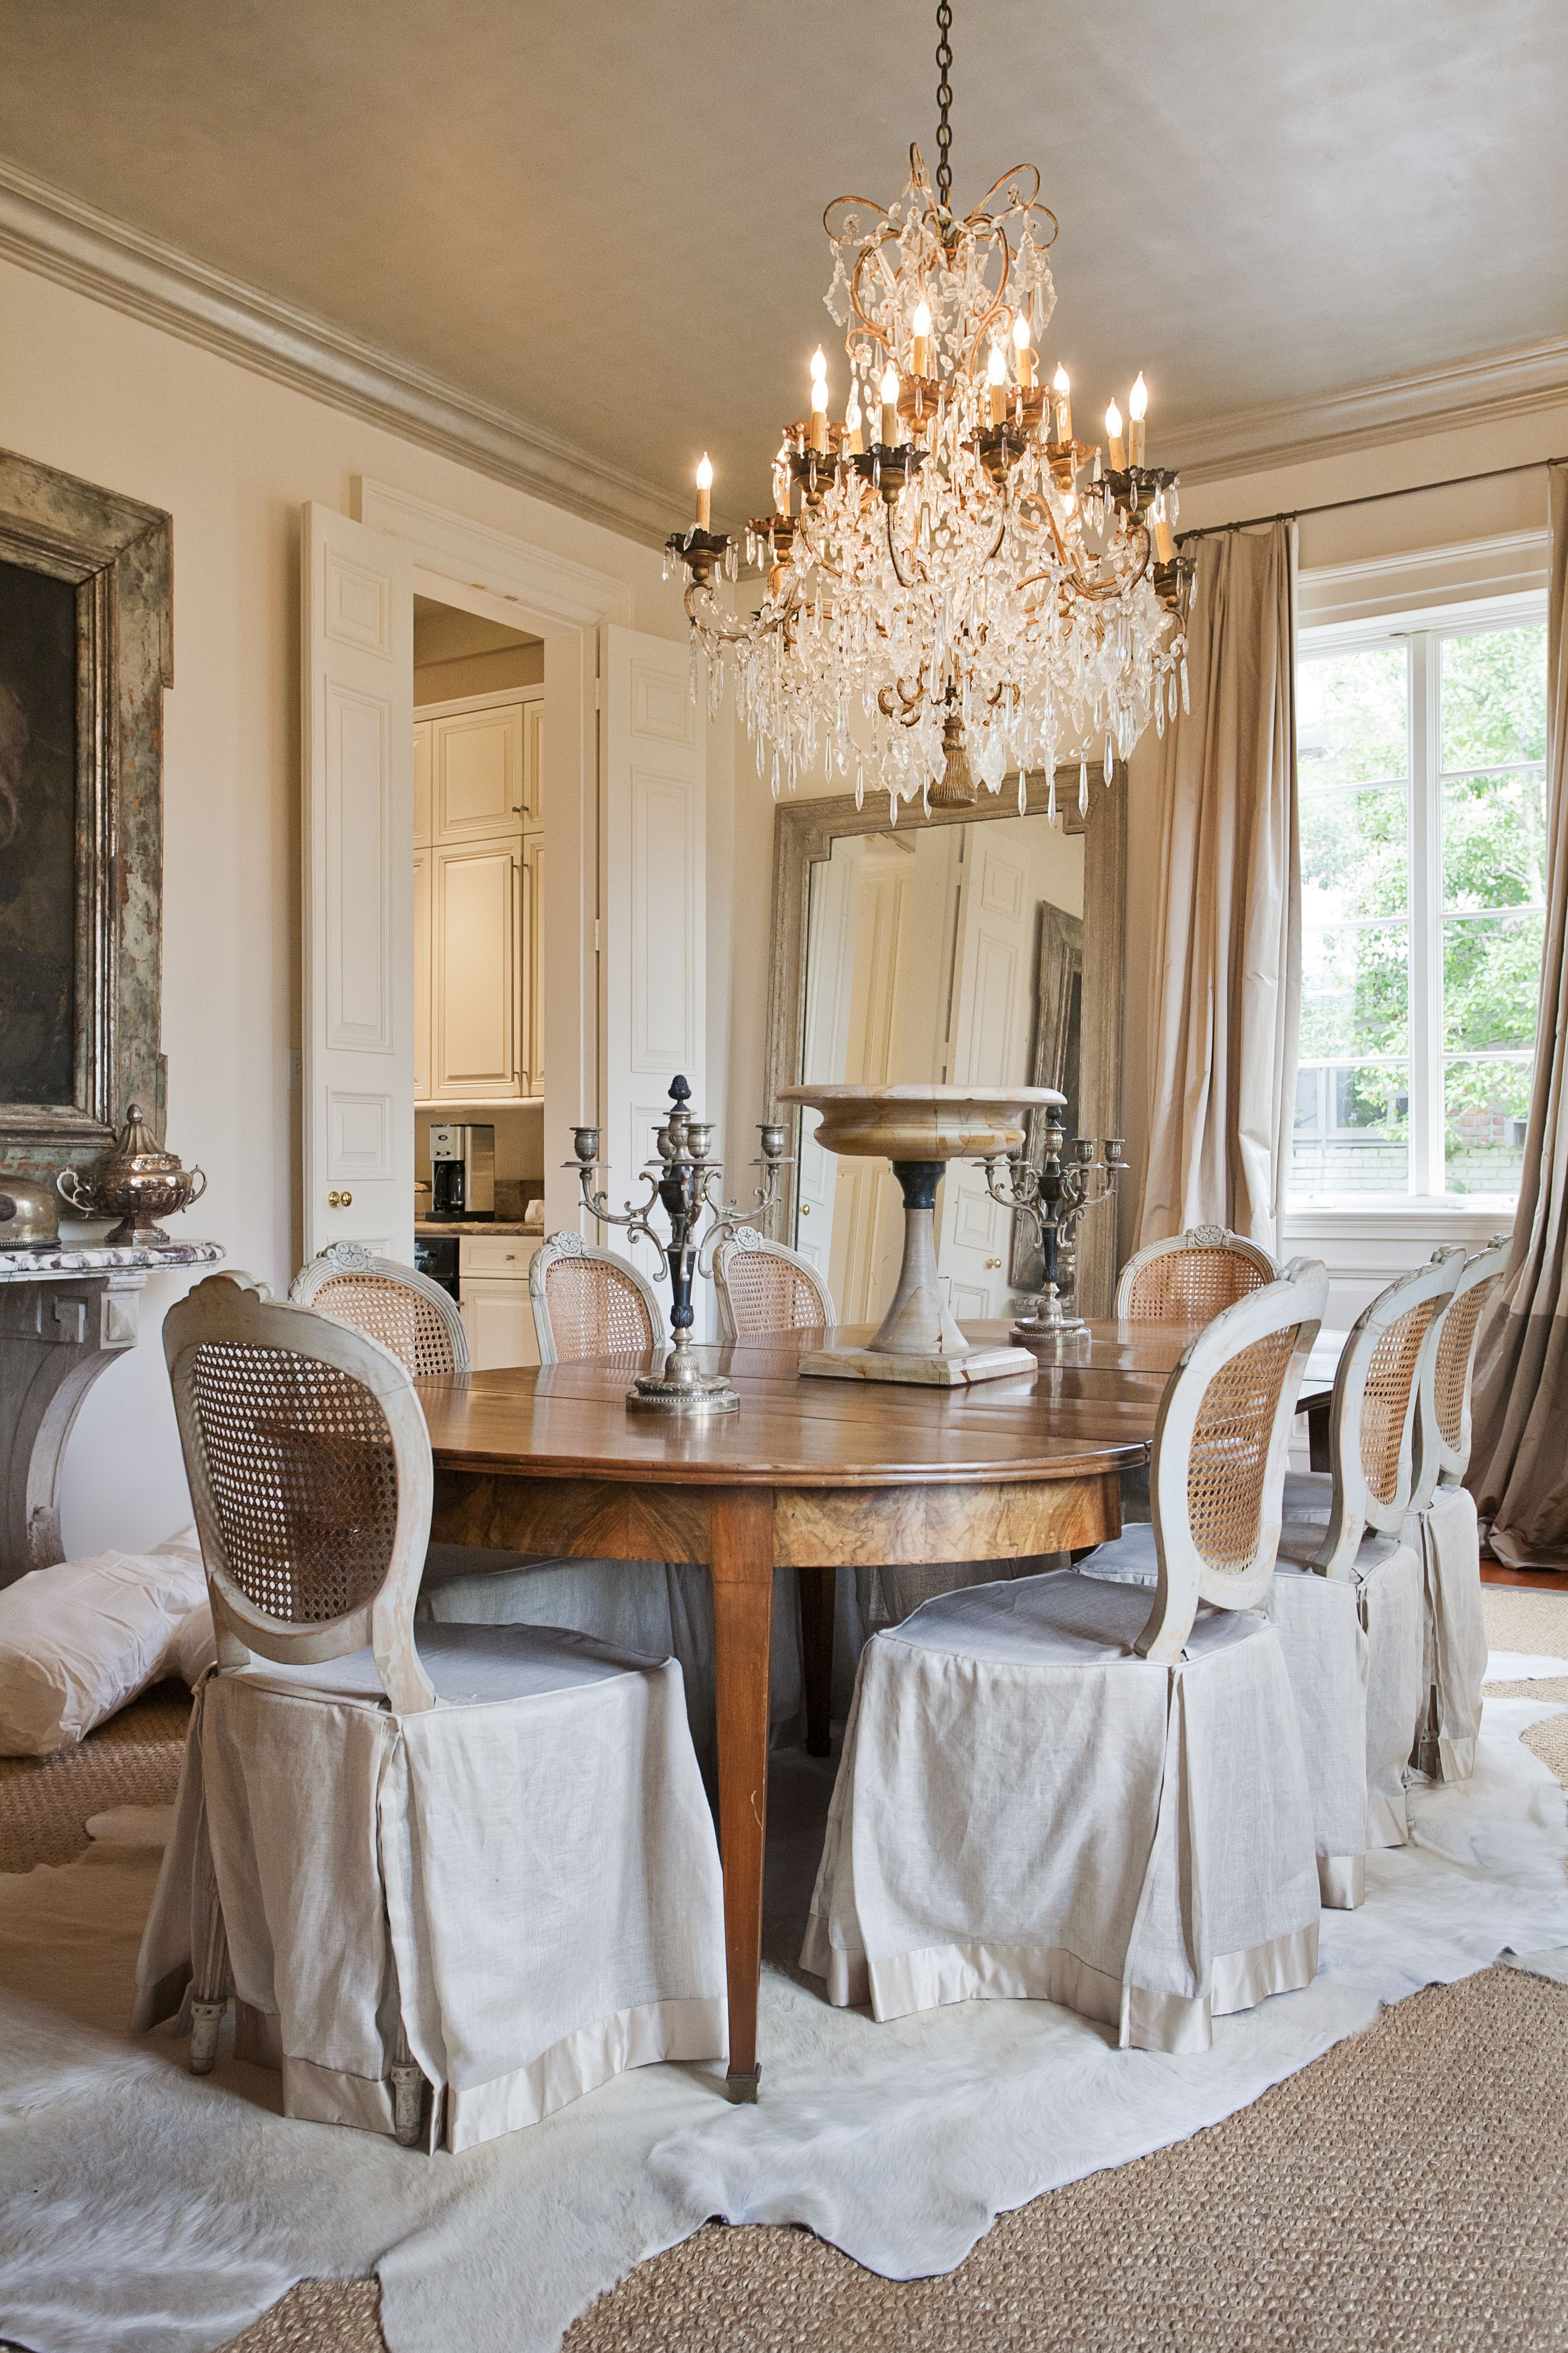 House Of Fraser Dining Room Furniture Glamorous 52 Ways Incorporate Shabby Chic Style Into Every Room In Your Home Design Ideas